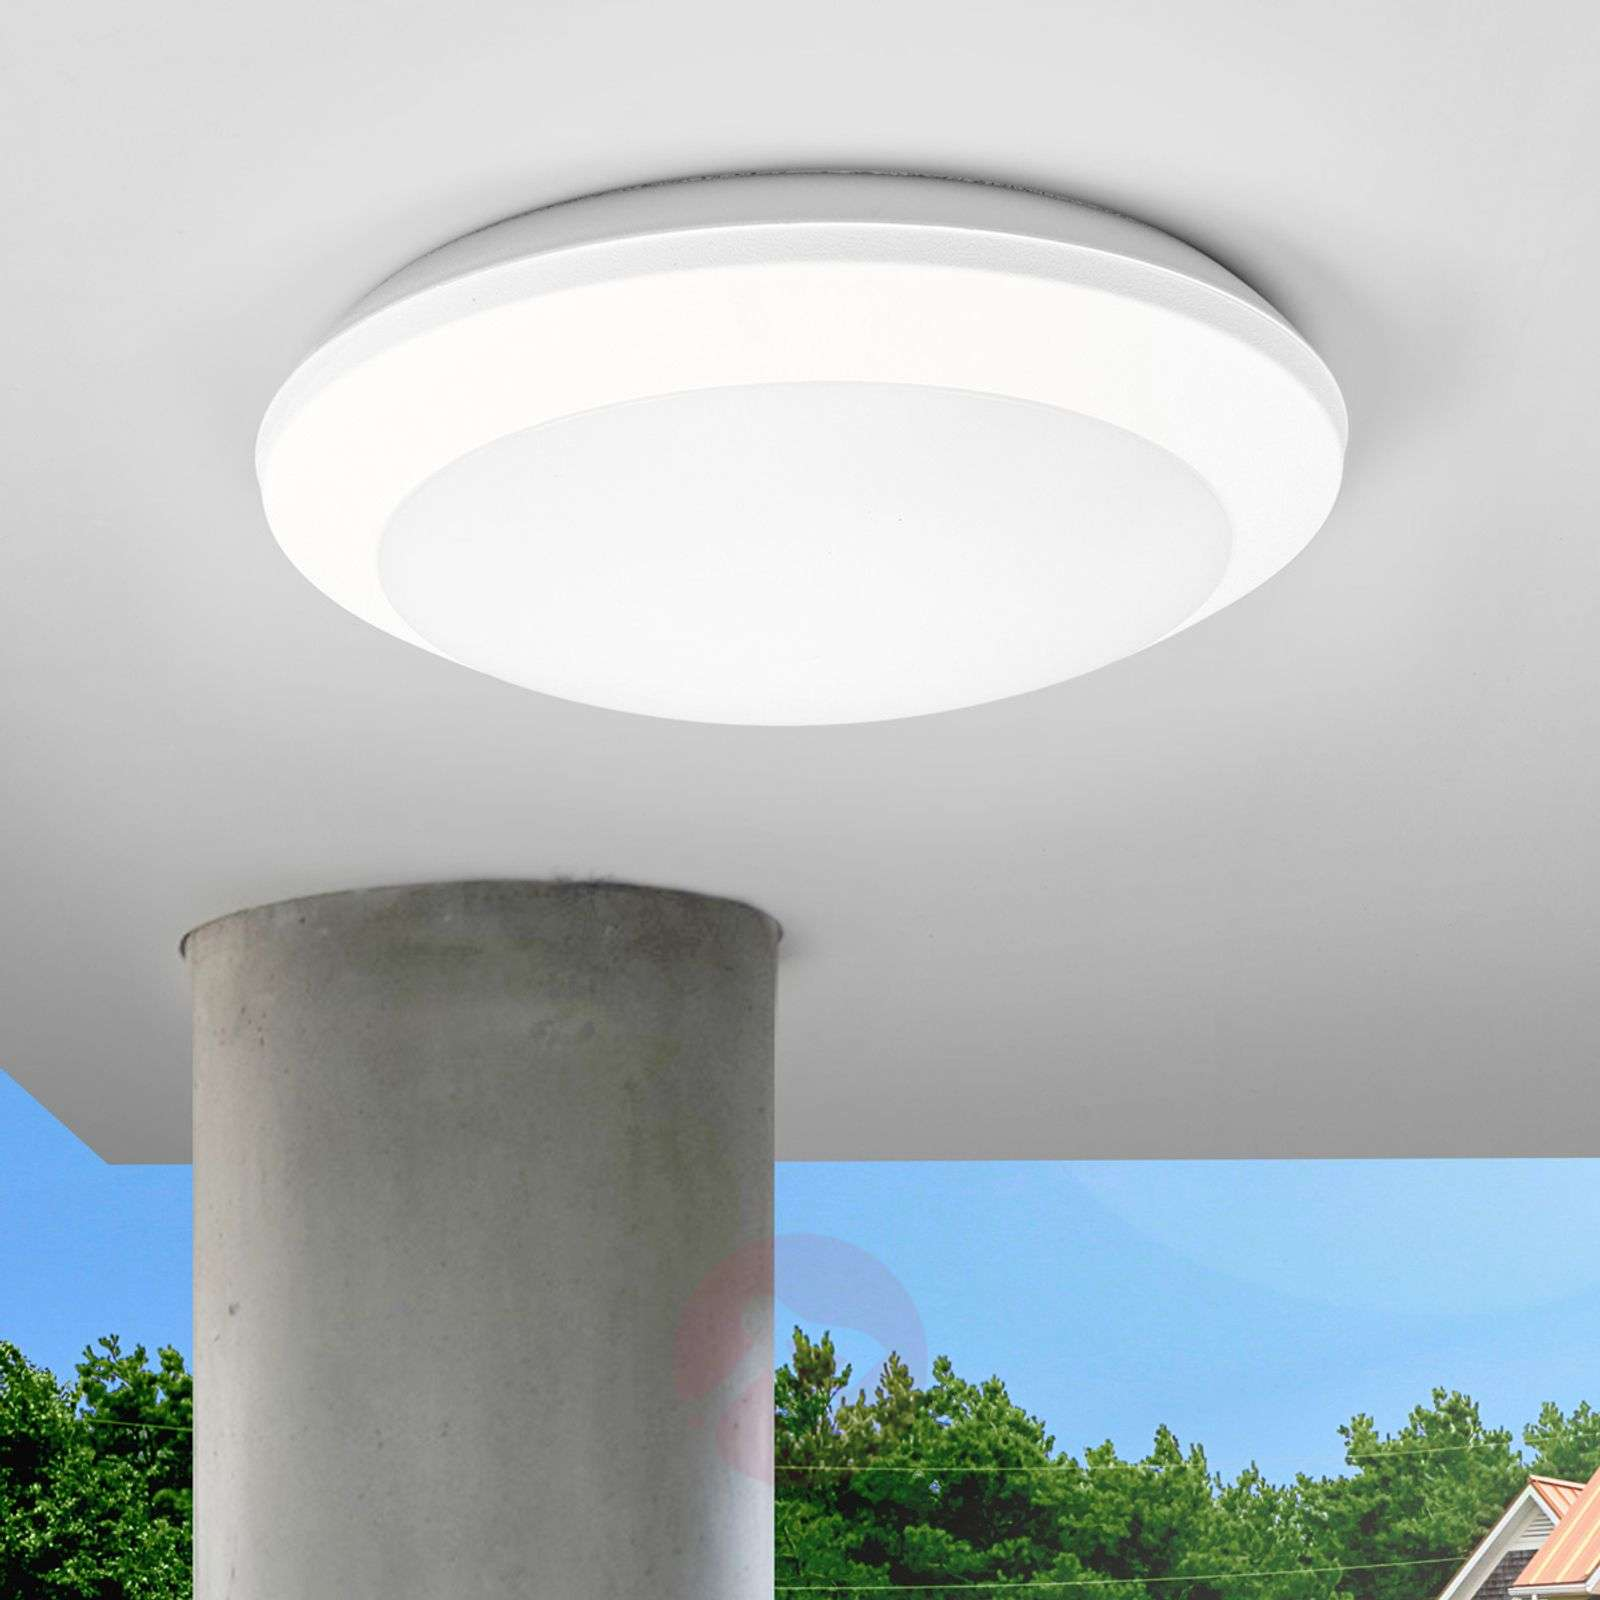 Sensor ceiling light umberta 2xe27 white lights sensor ceiling light umberta 2xe27 white 3538058 04 mozeypictures Image collections